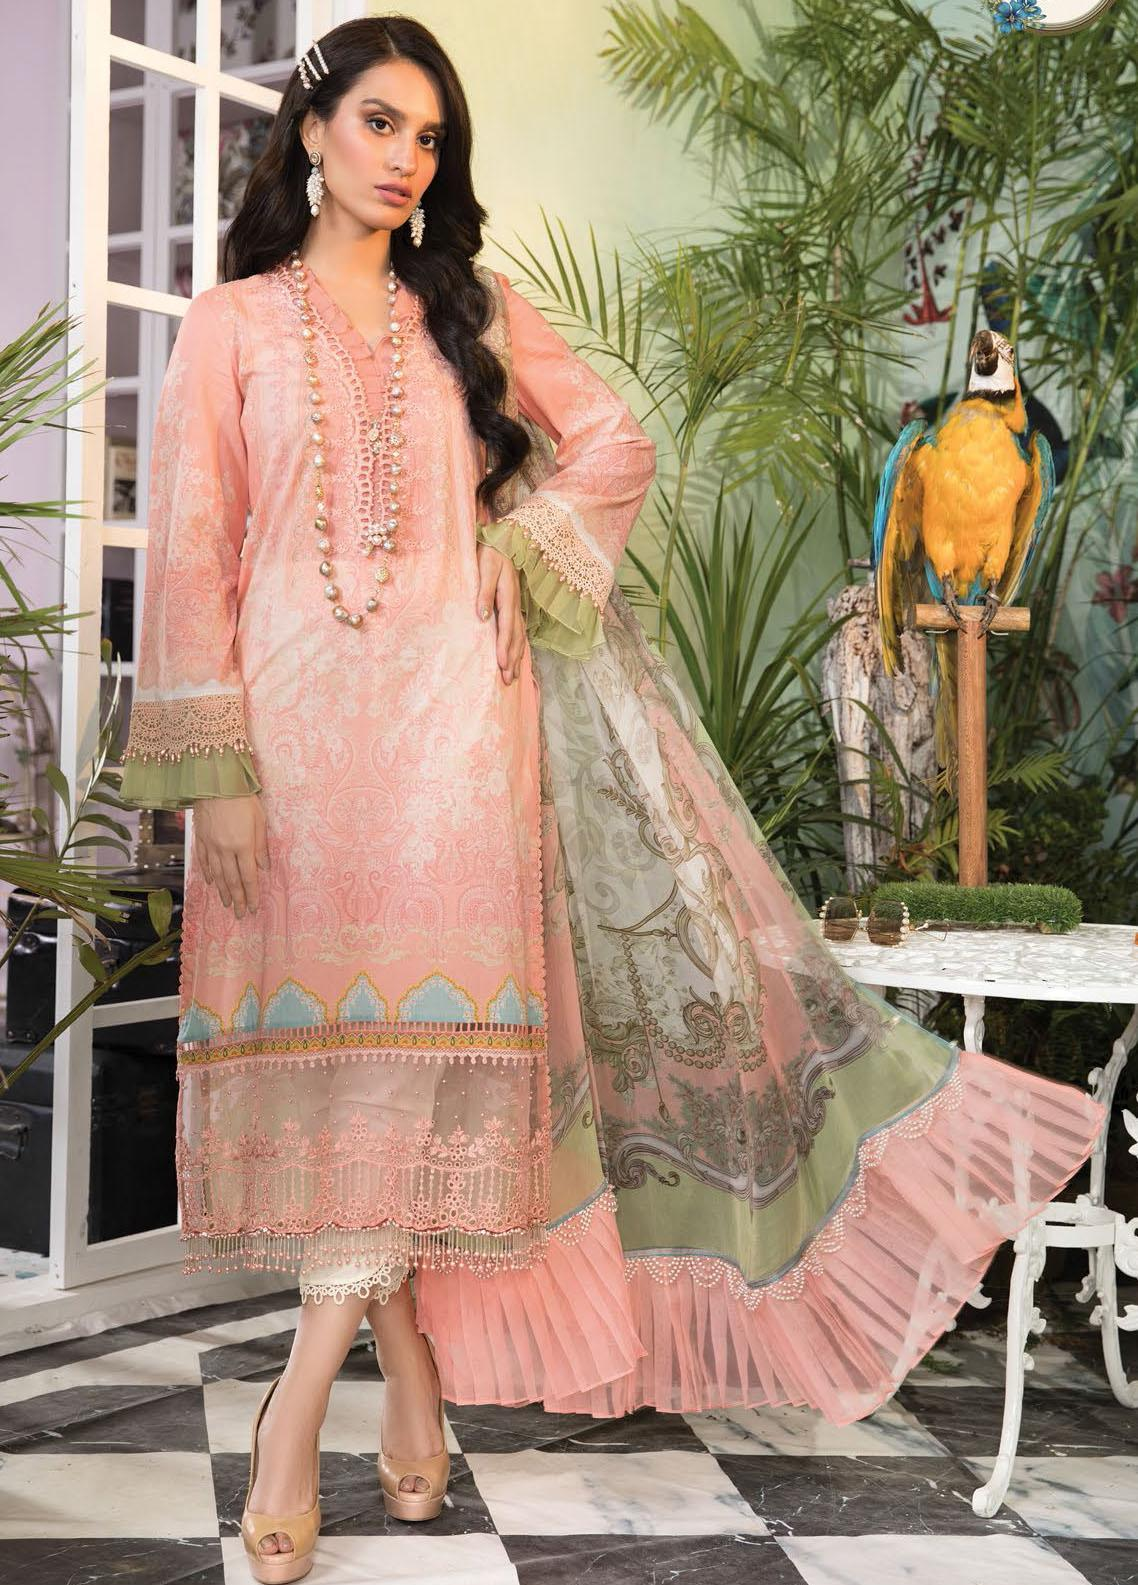 Mprints By Maria B Printed Lawn Suits Unstitched 3 Piece MB21-MP2 1108-B - Summer Collection